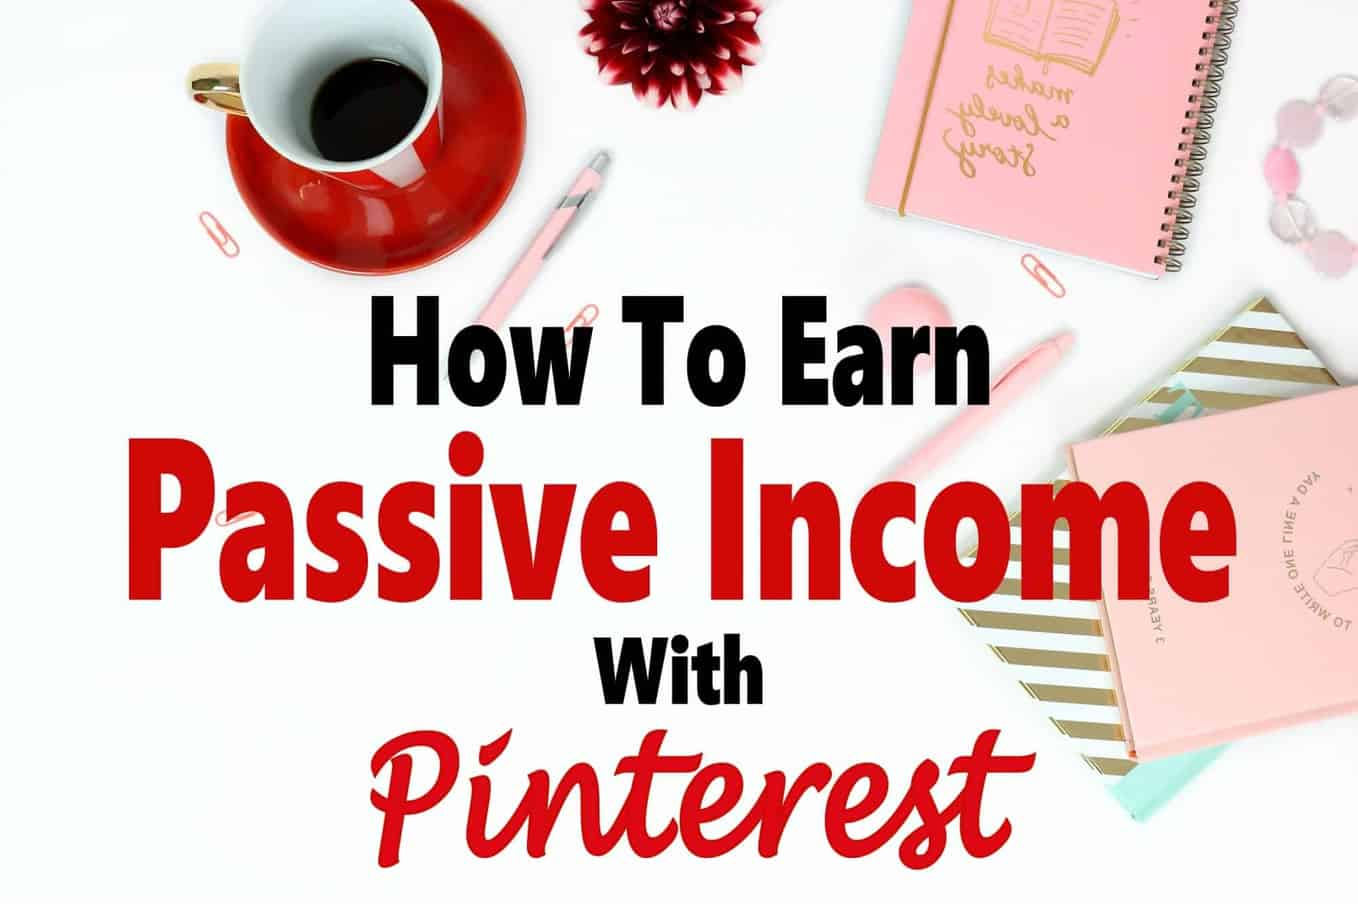 How to Earn Passive Income on Pinterest. Did you know you can make money on Pinterest even if you don't have a blog or website? Yup, and it's passive income at that! Read on to learn how... Pinterest | passive income | extra money | make money #Pinterest #finance #money #makemoney